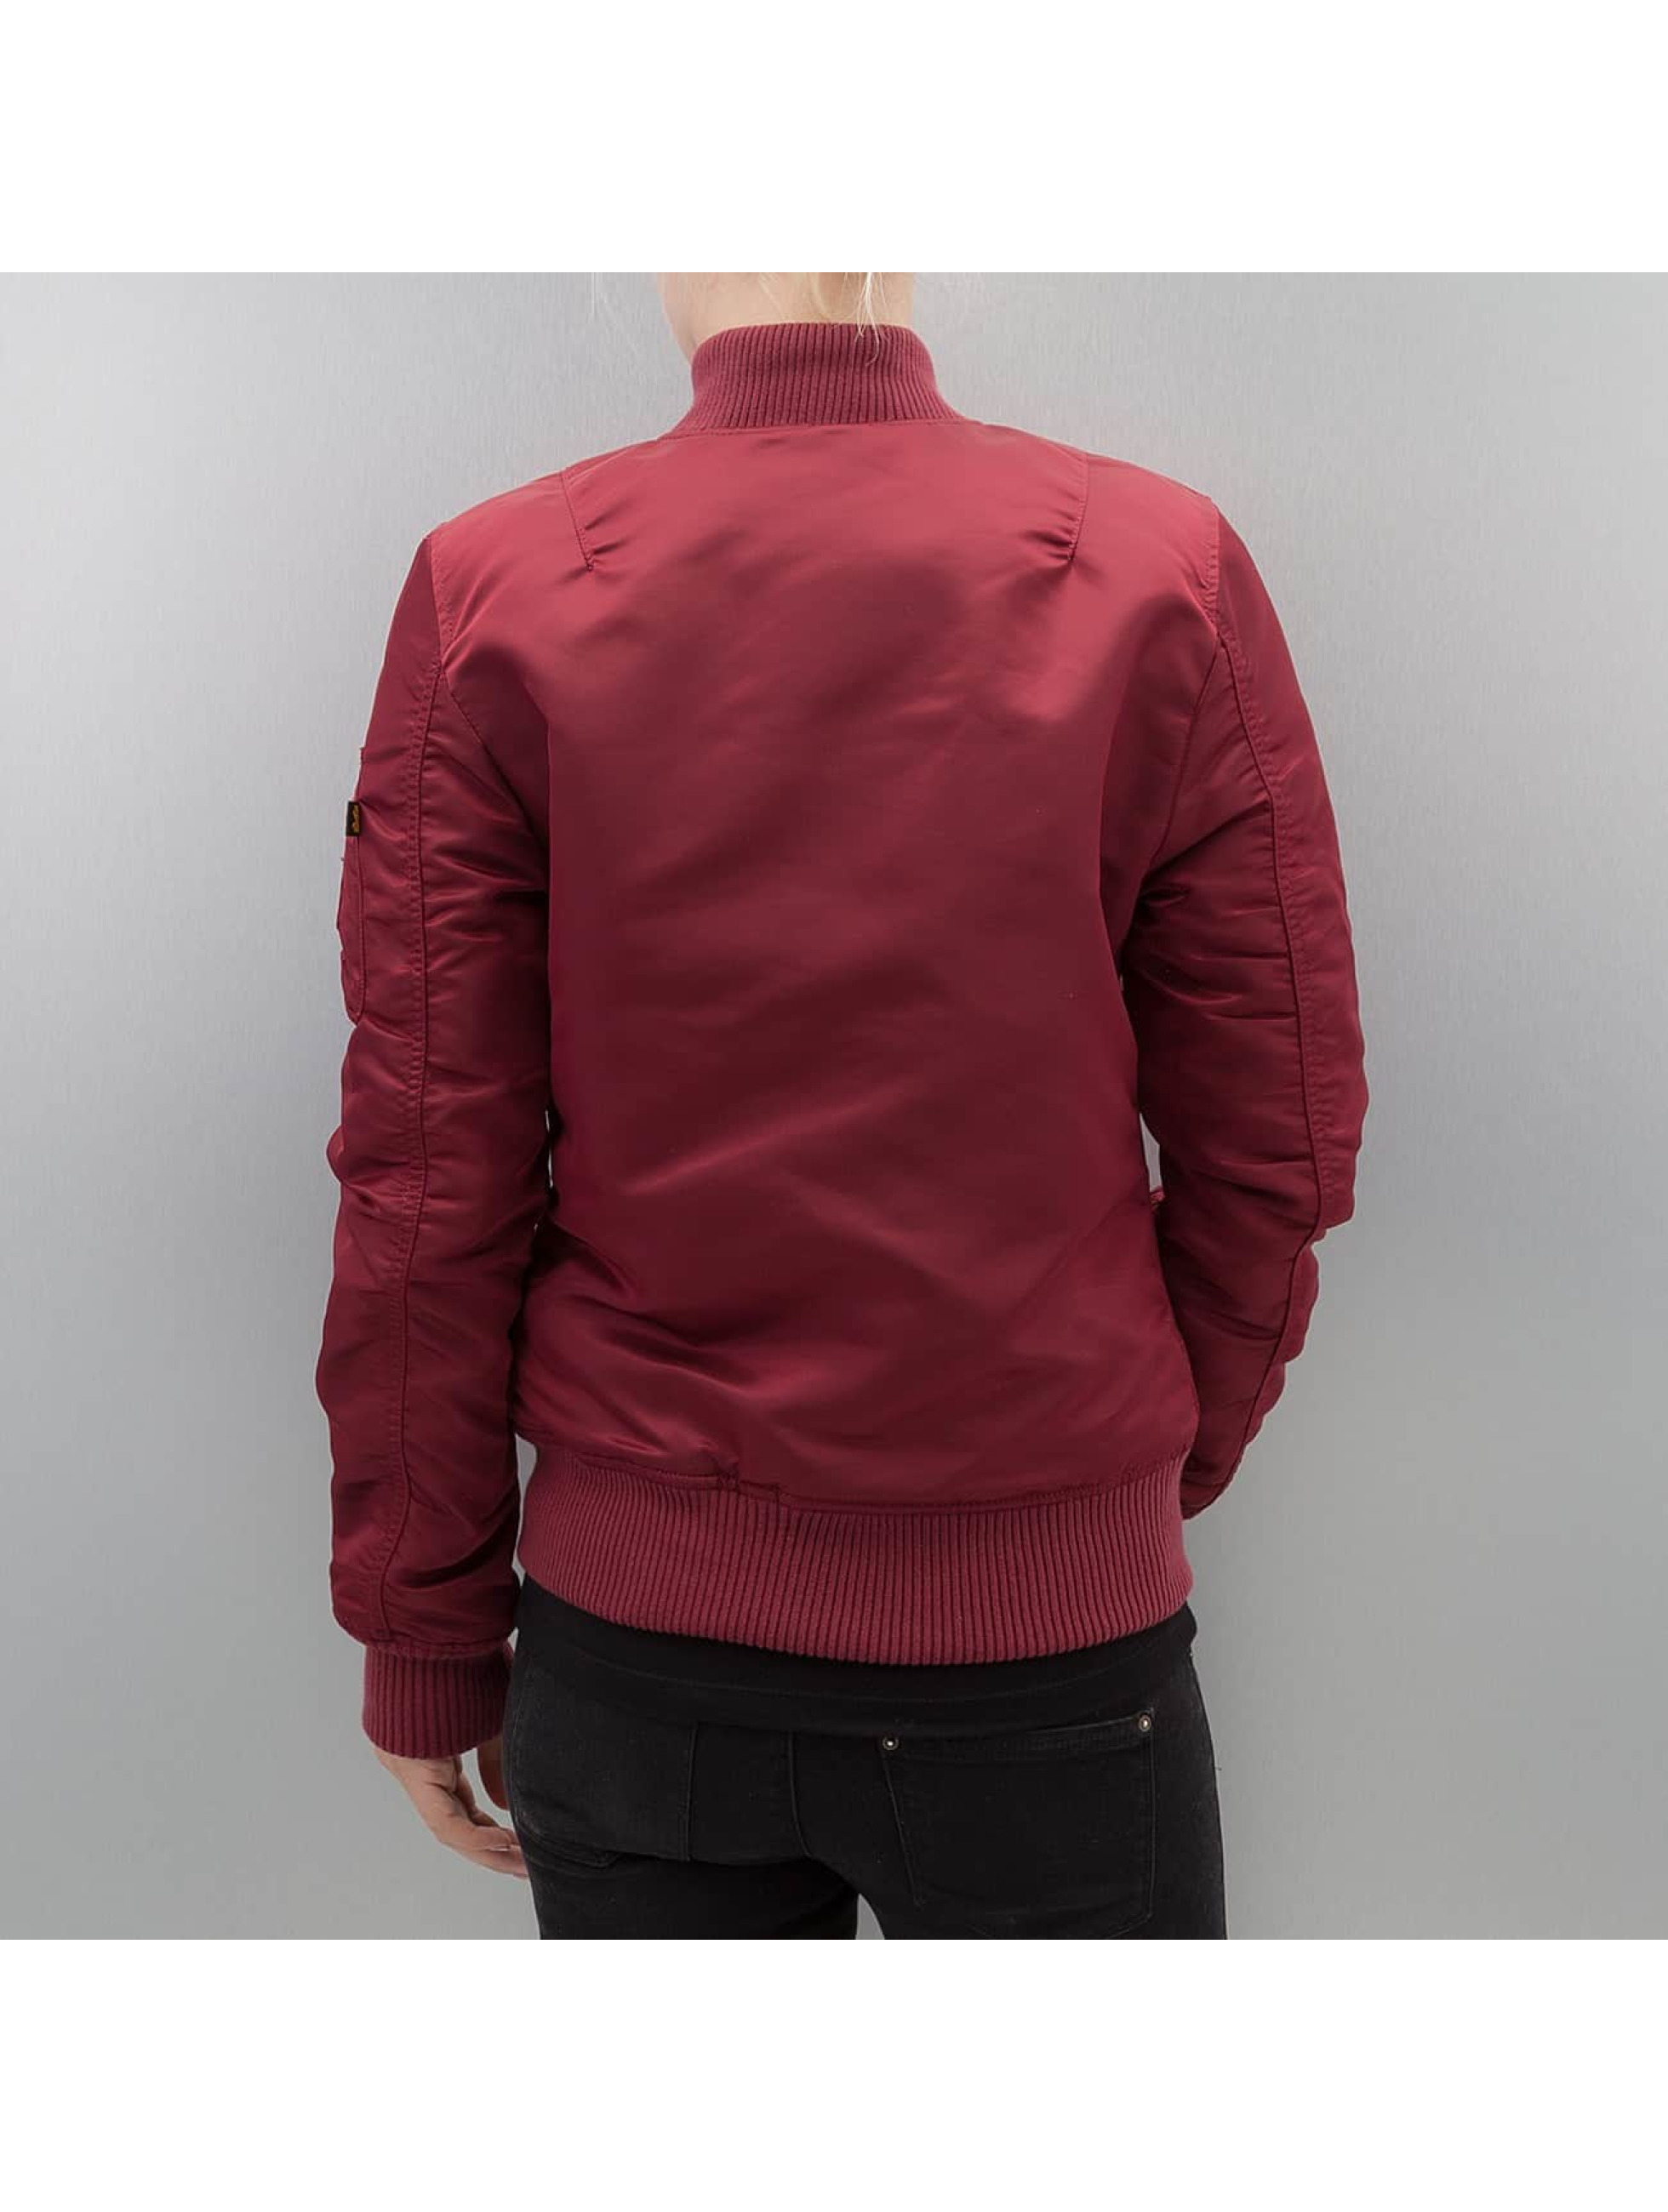 Alpha Industries Bomber jacket MA 1 VF 59 Women red